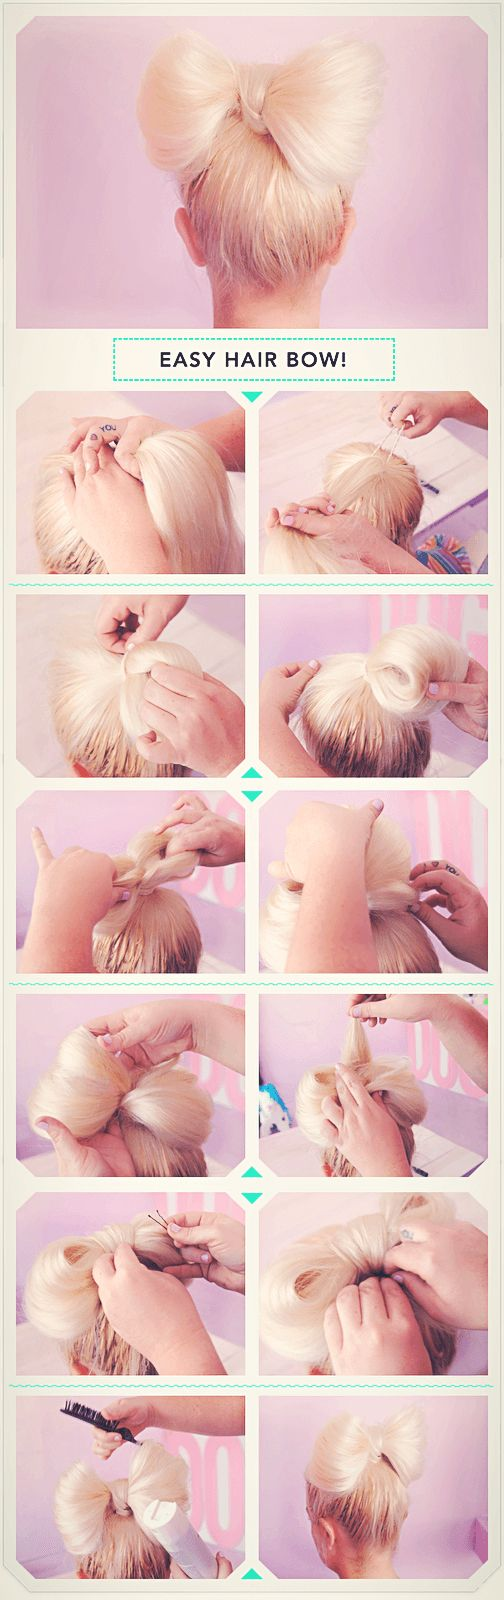 The steps to an easy hair bow